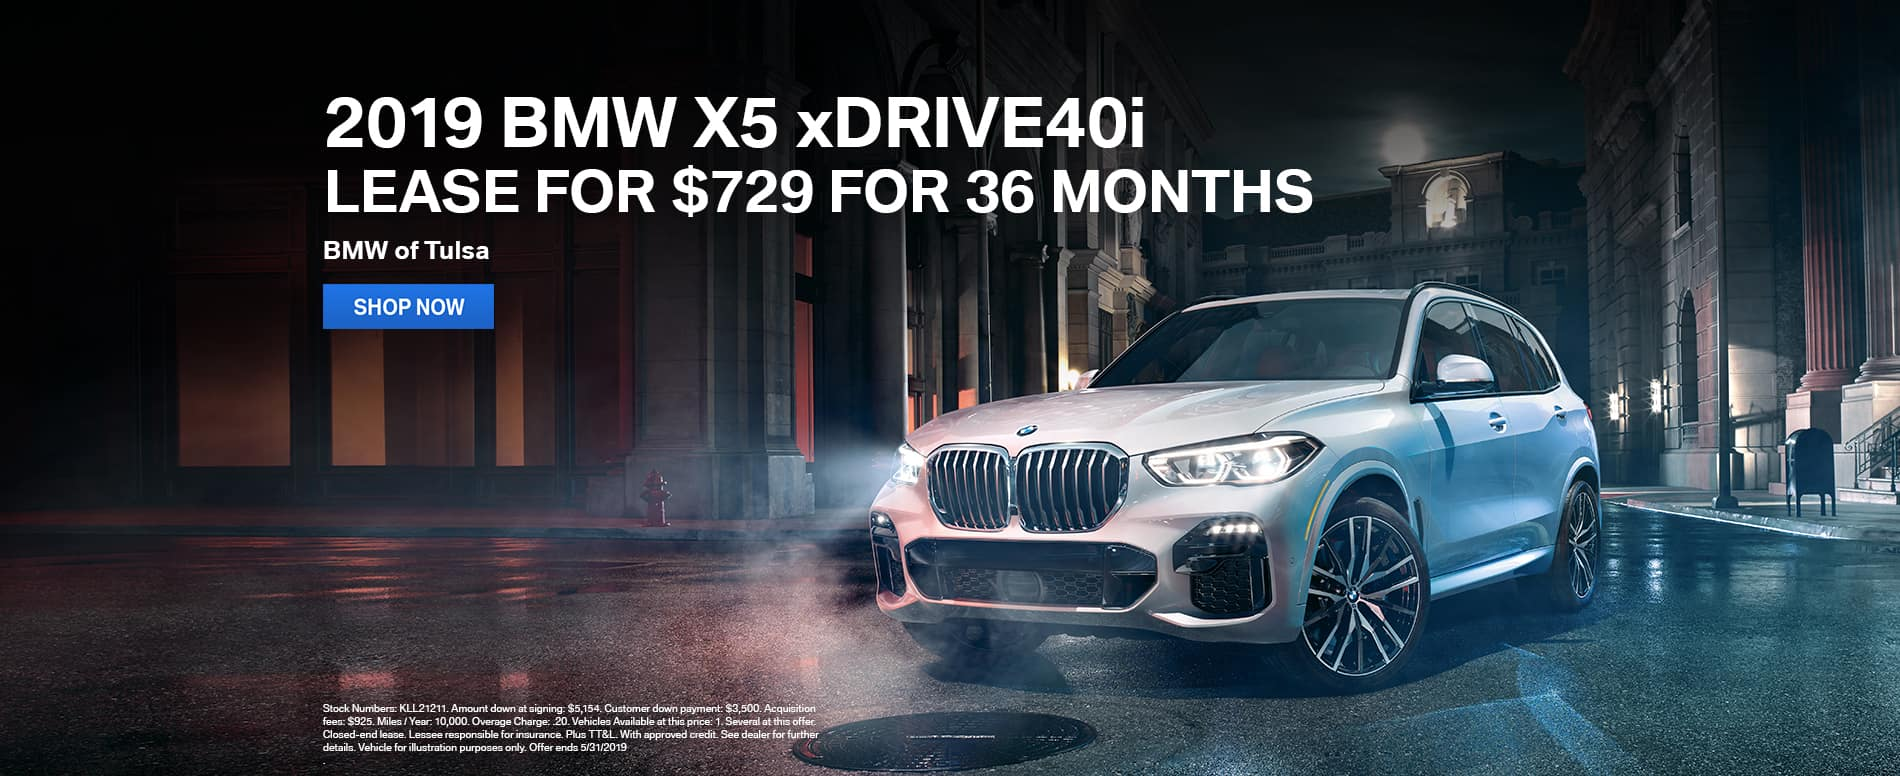 lease-2019-bmw-x5-xdrive40i-for-729-per-month